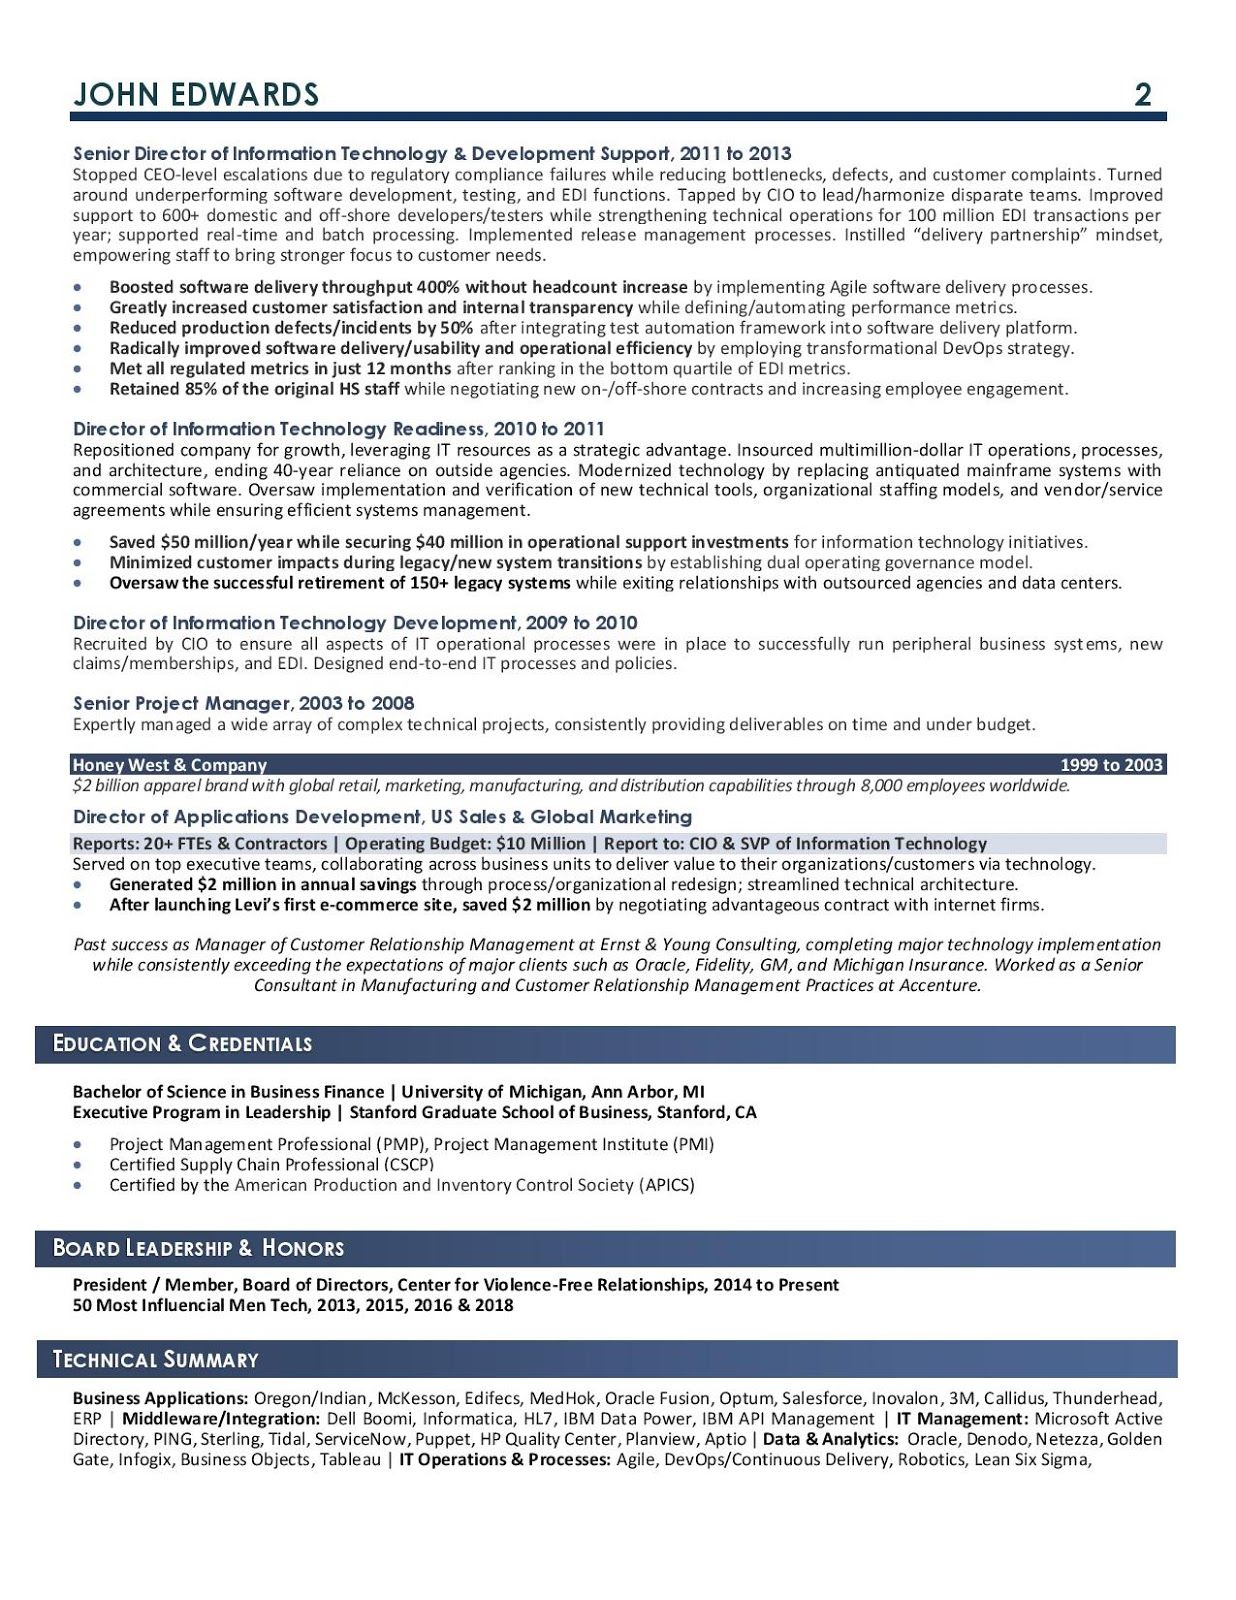 Image Of A Resume Cover Letter 2019 Image Resize Upload Image Of A Good Resume 2020 Image Sample Of A Re Job Resume Examples Resume Services Job Resume Samples